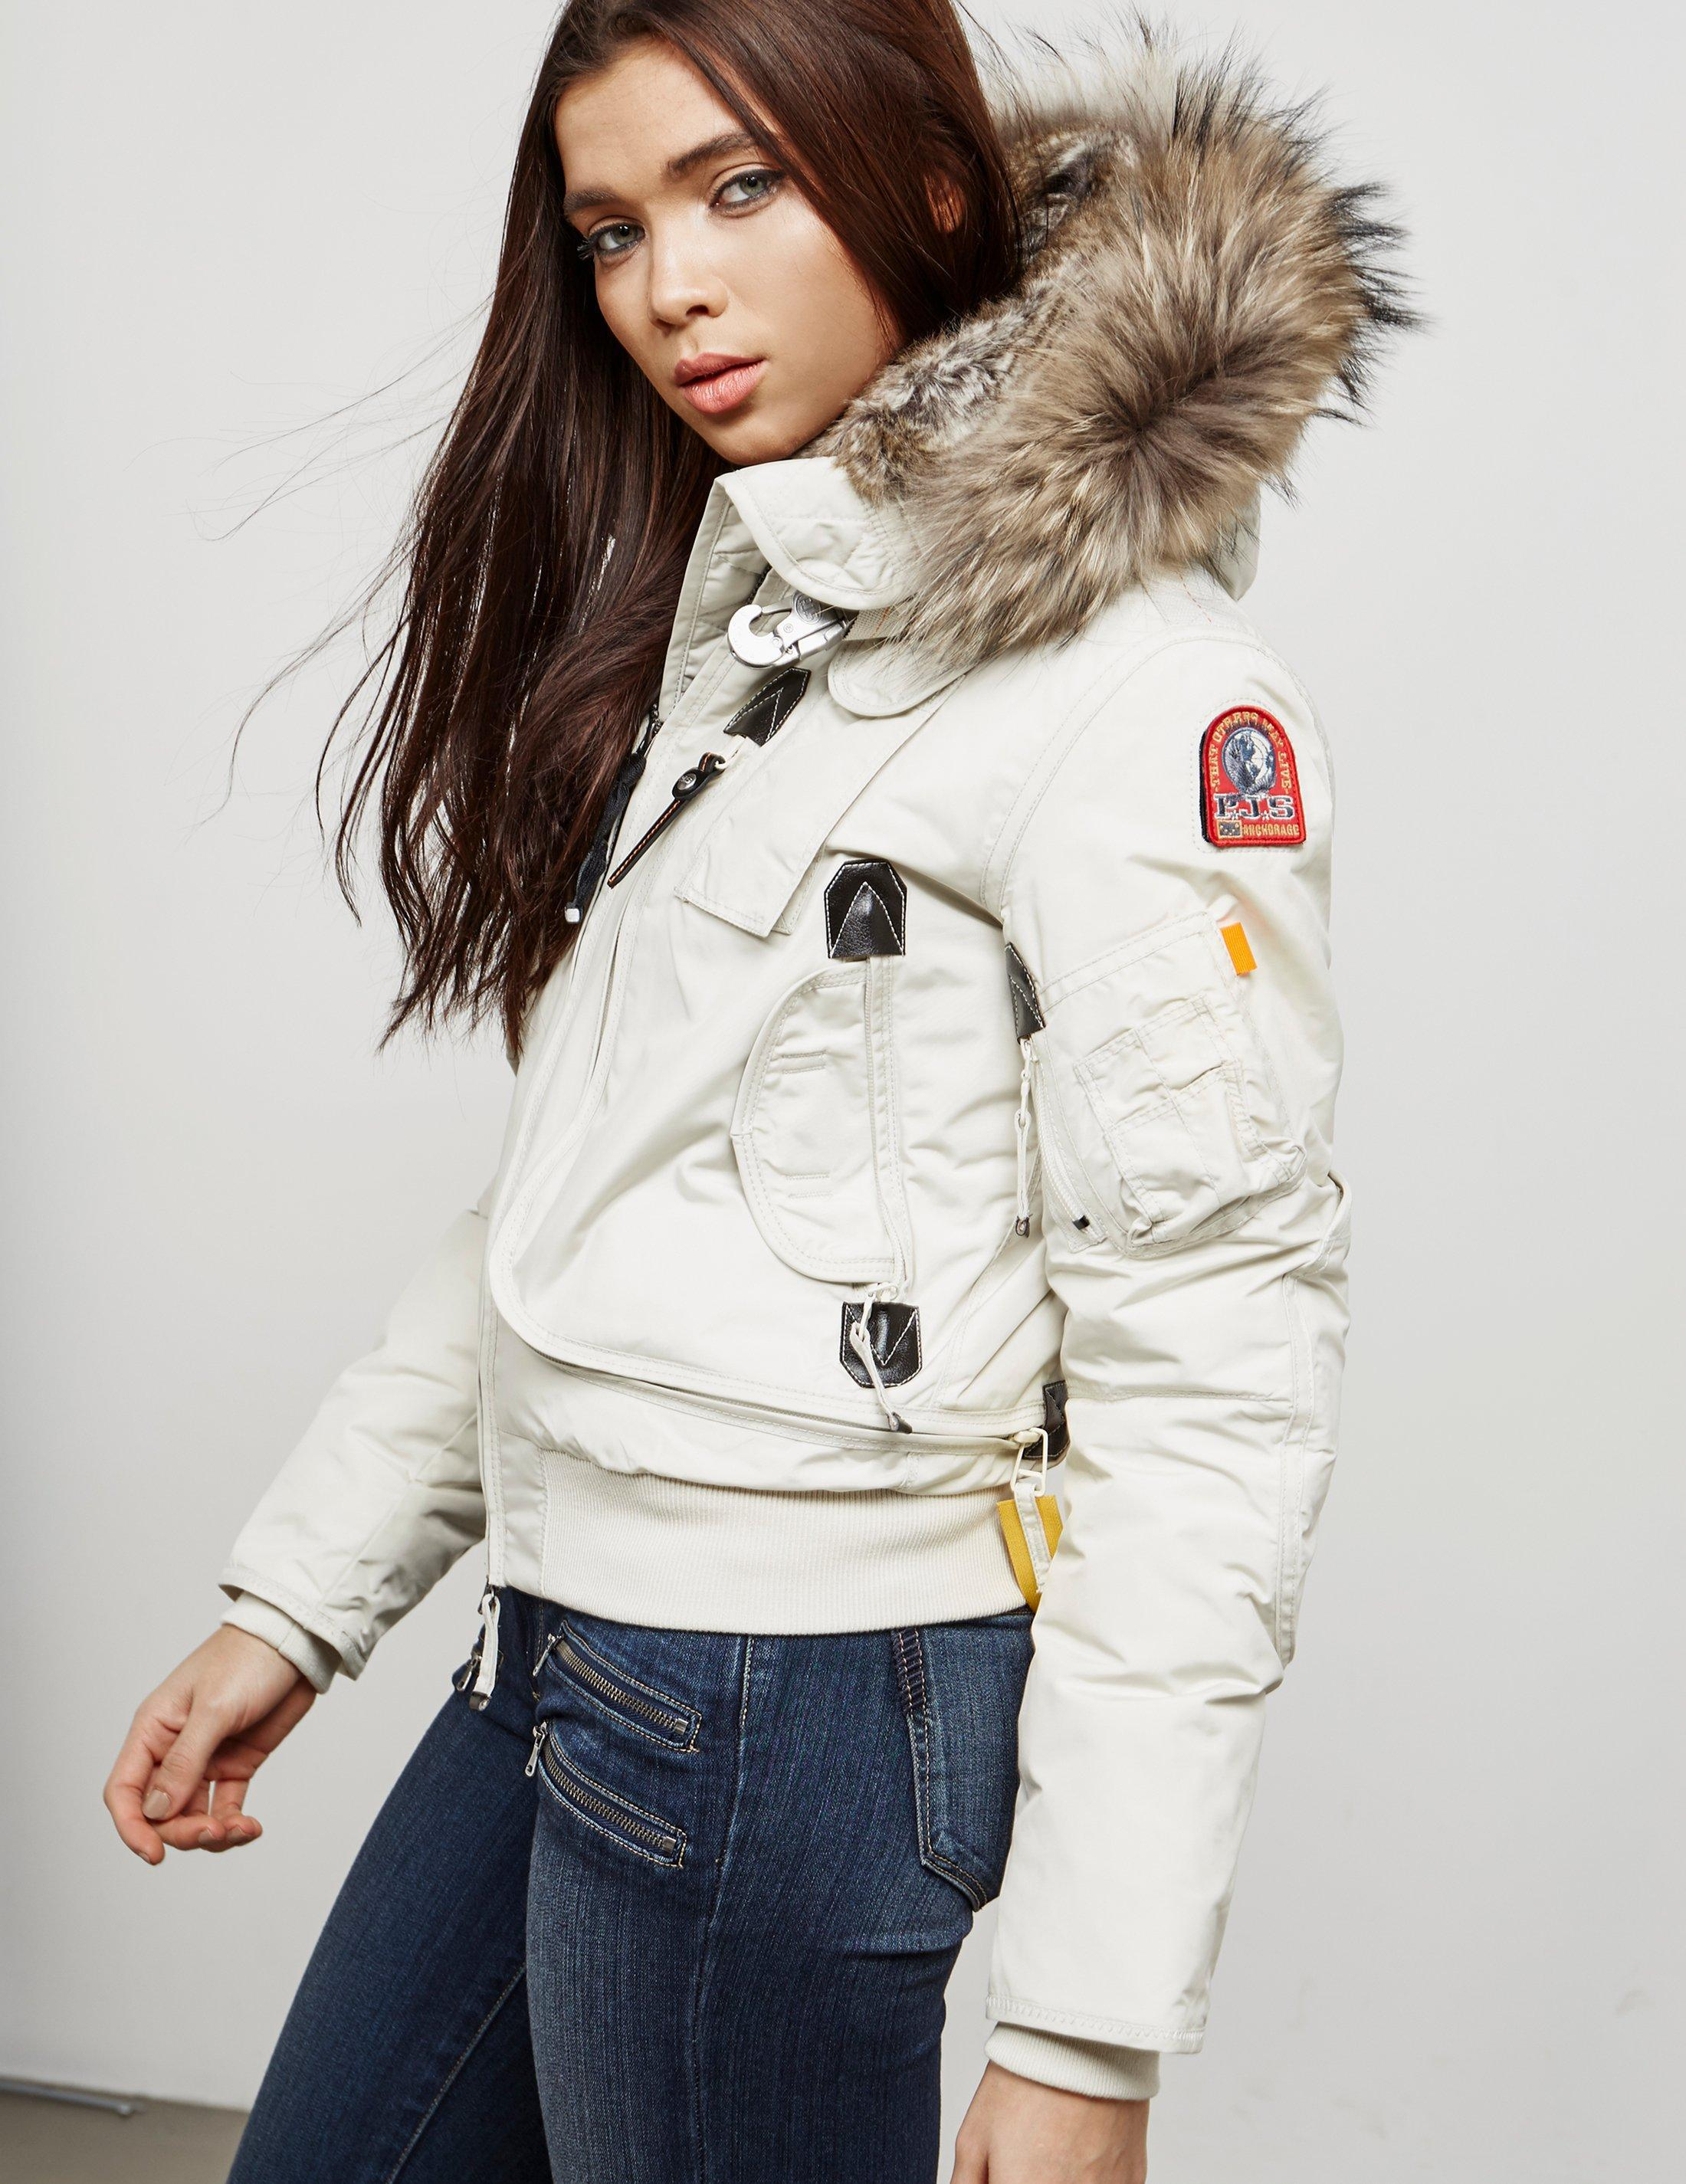 PARAJUMPERS Cropped Jackets spain